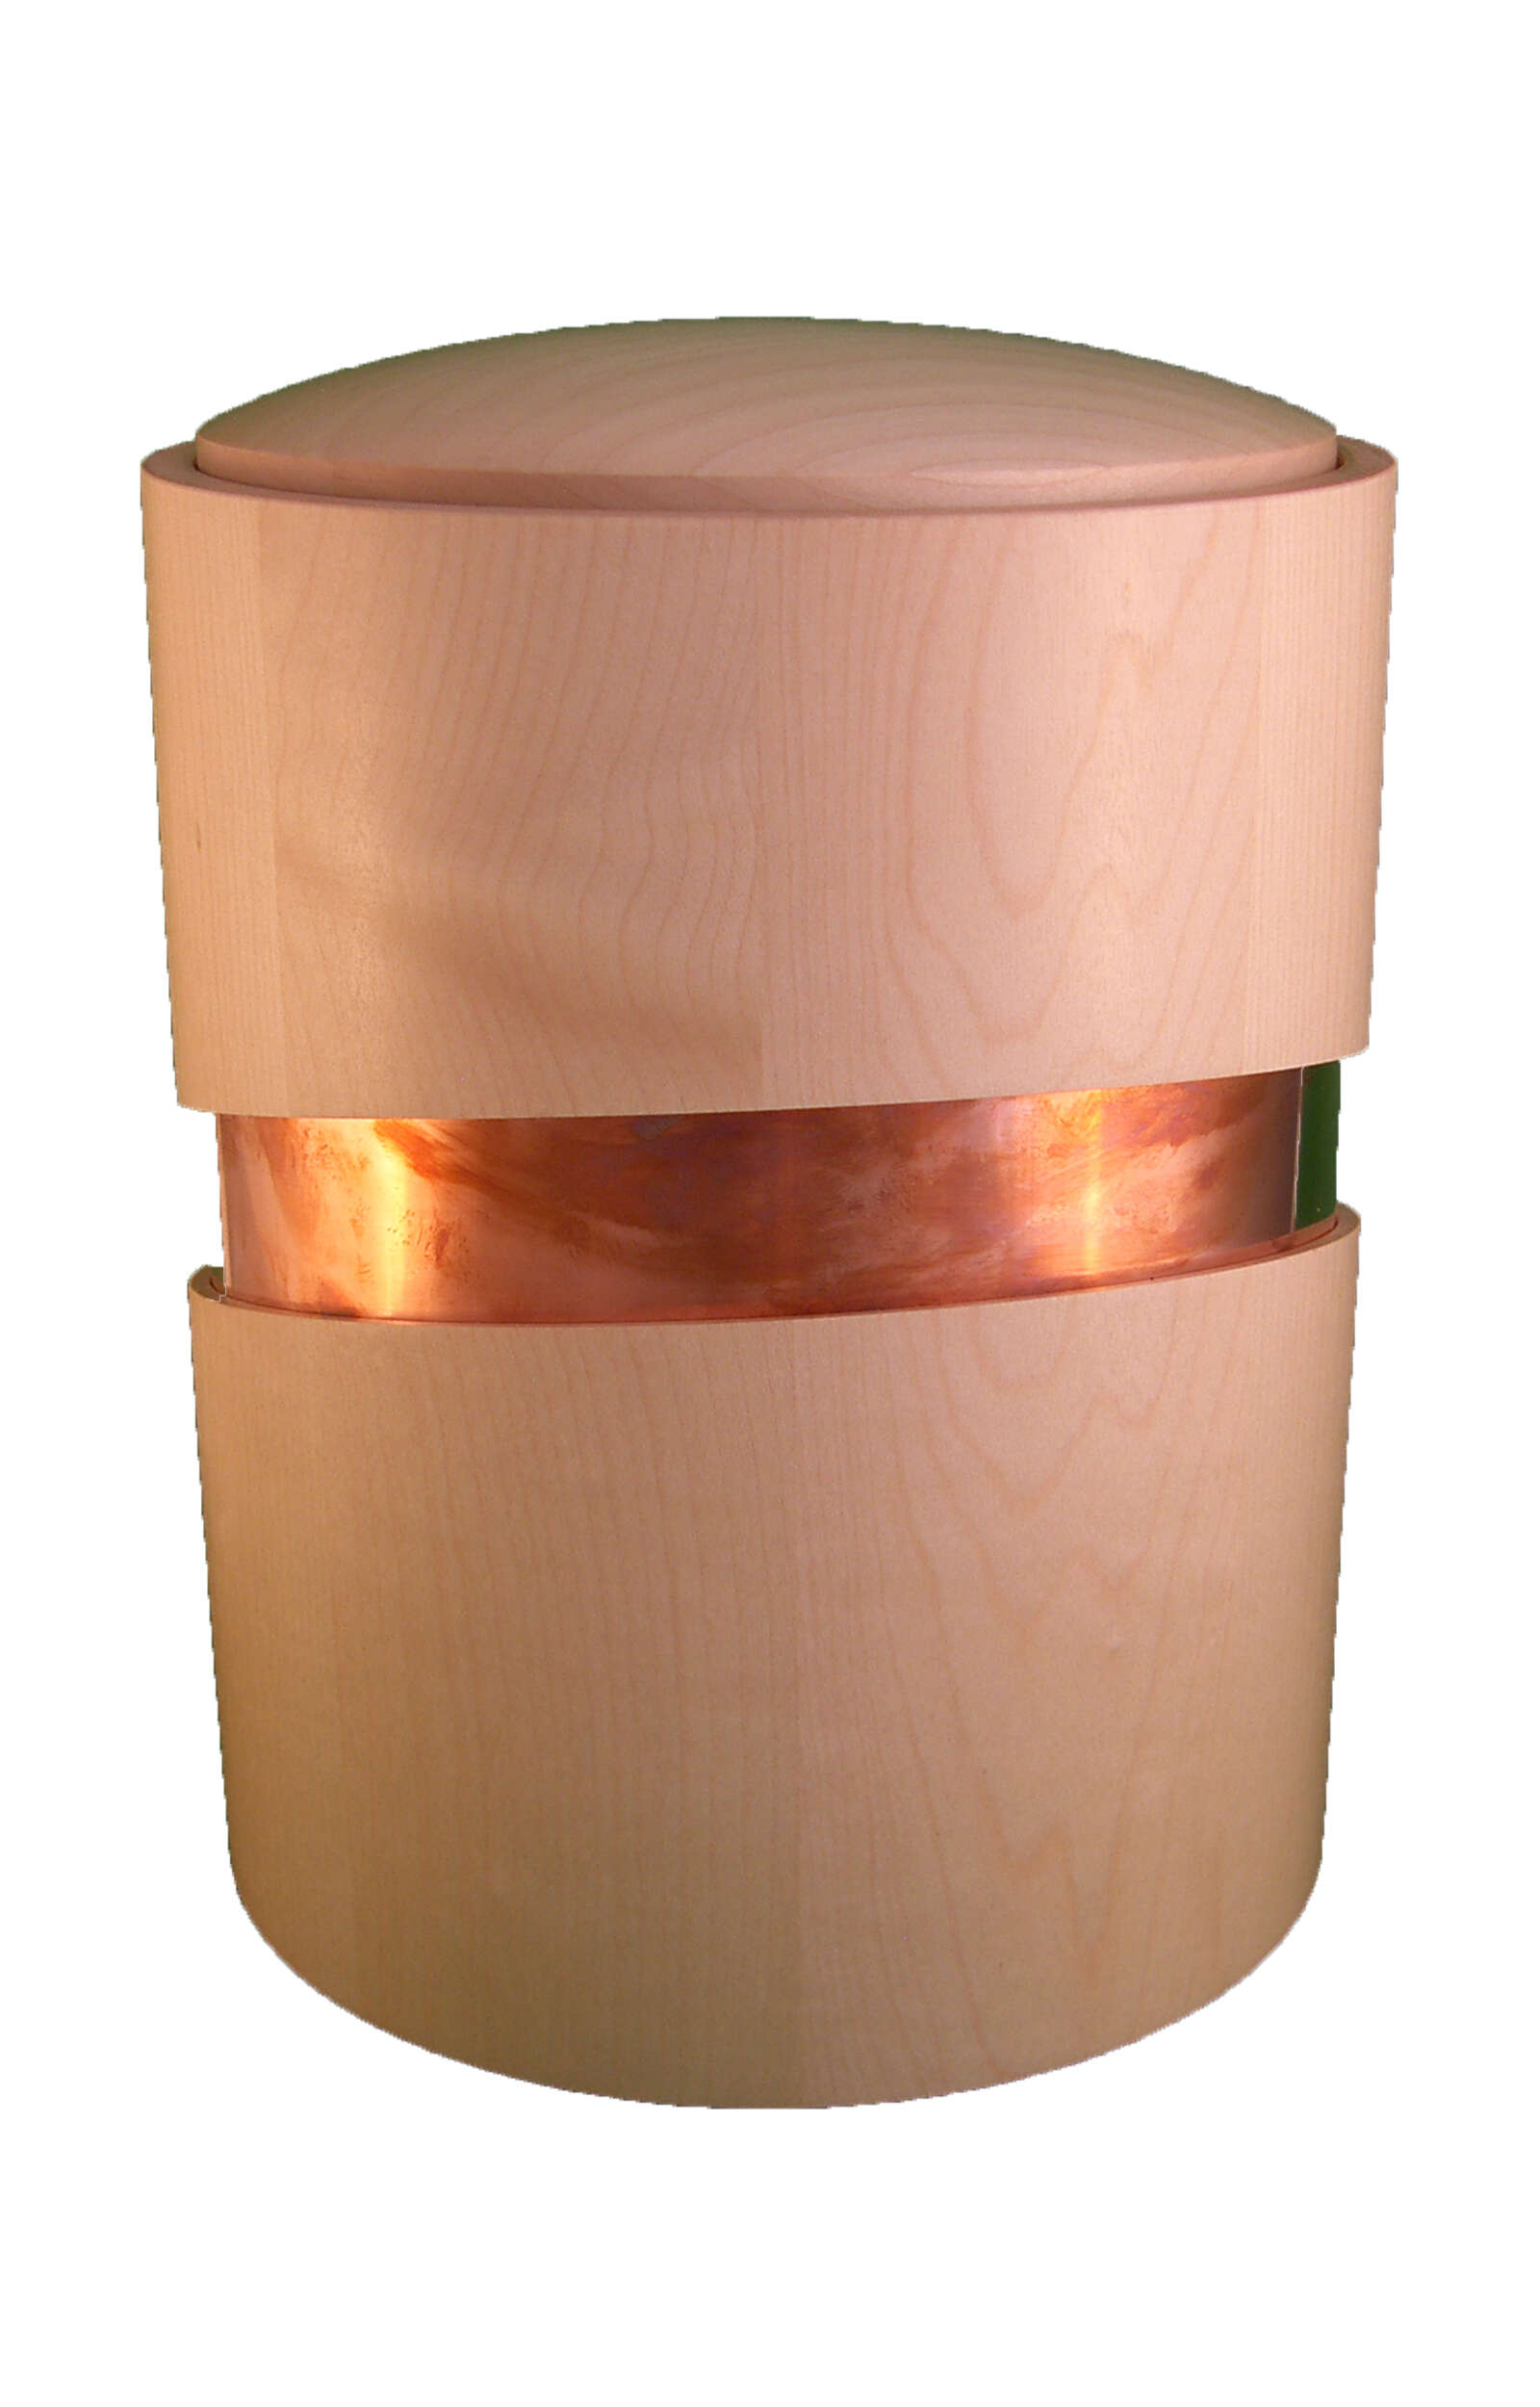 en HB3103 wooden funeral urn with metal decoration